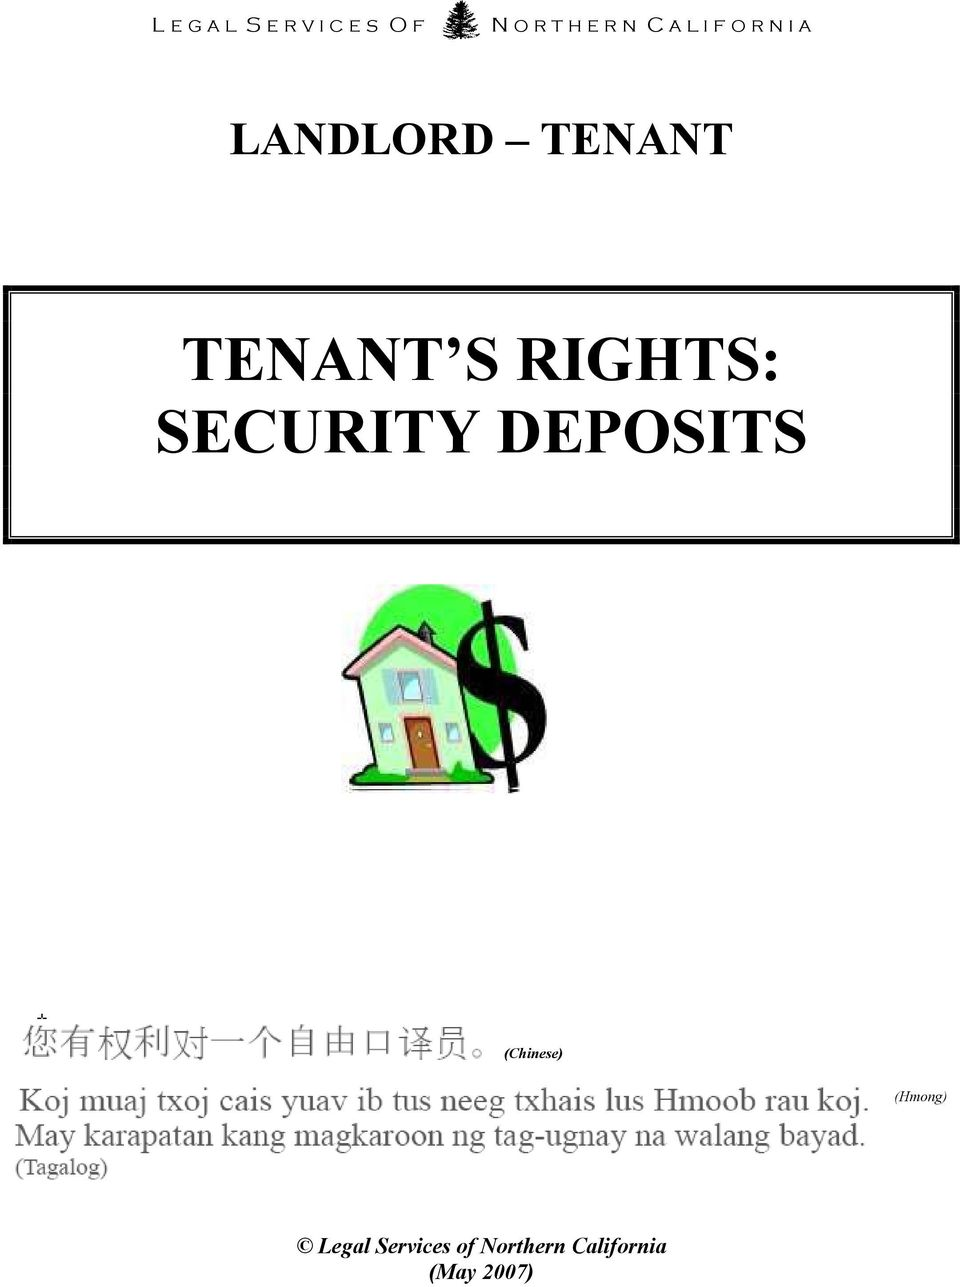 RIGHTS: SECURITY DEPOSITS (Chinese) (Hmong)